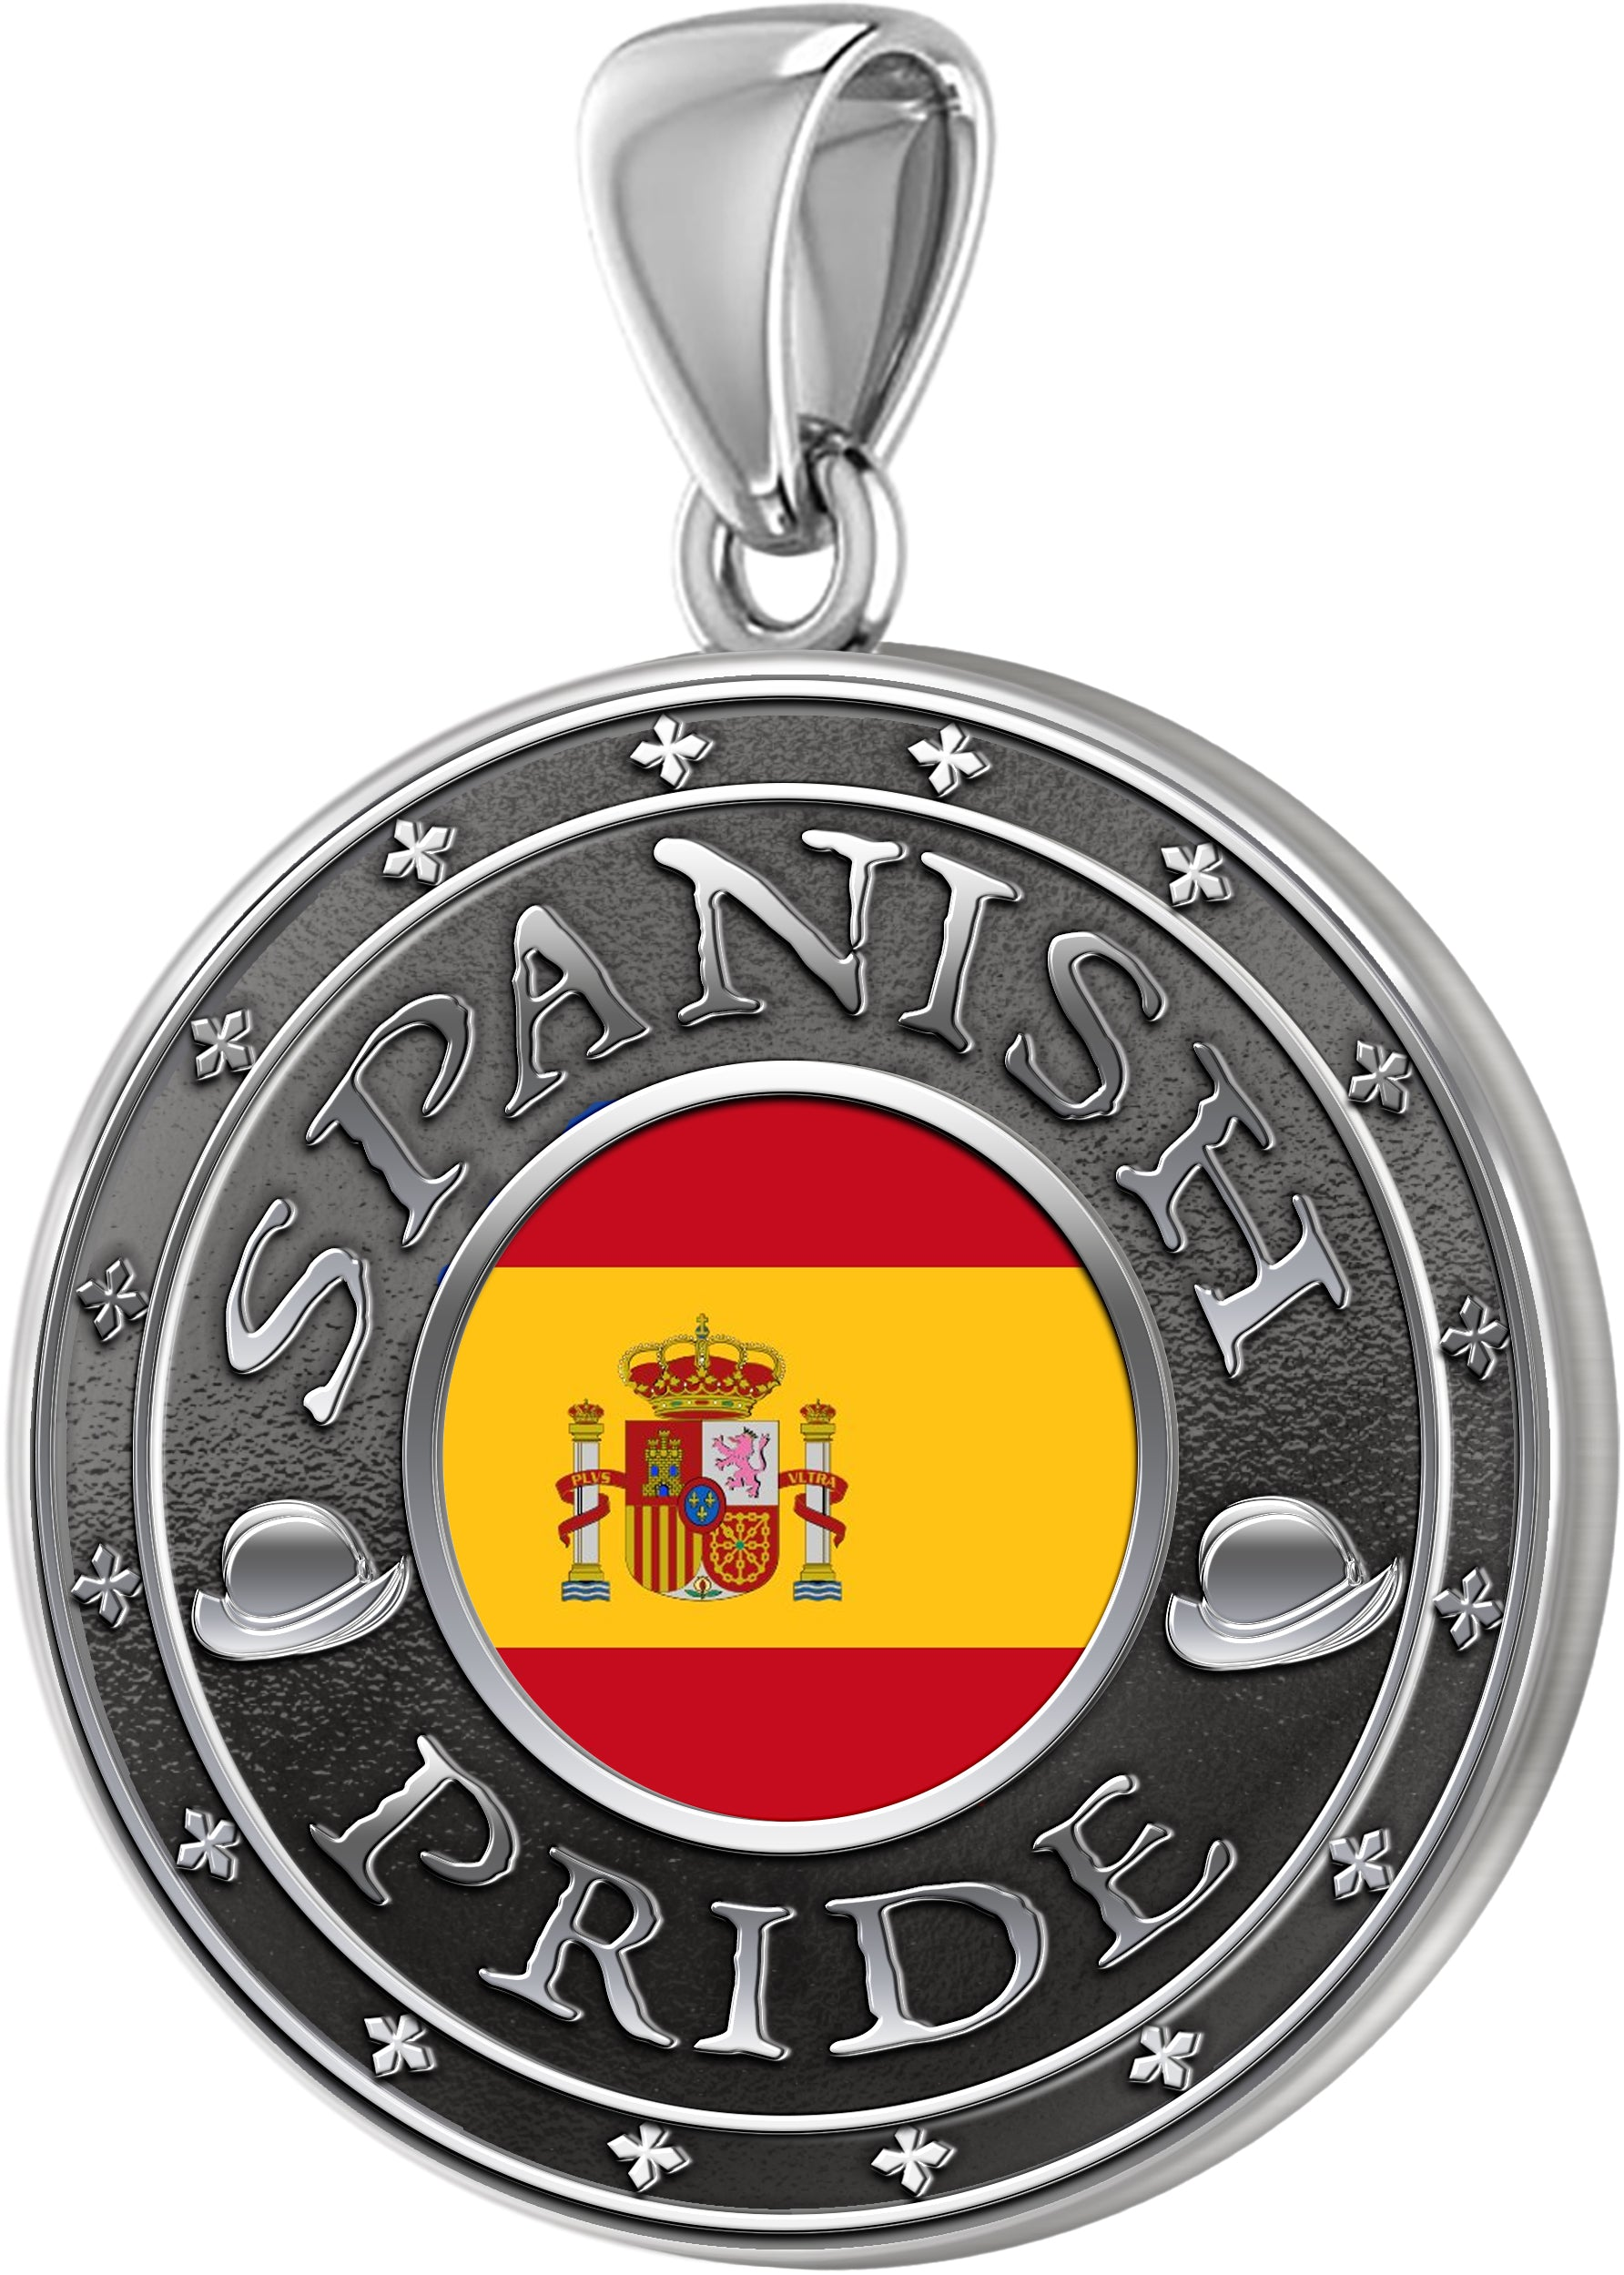 Spanish Necklace In Silver With Flag - Pendant Only